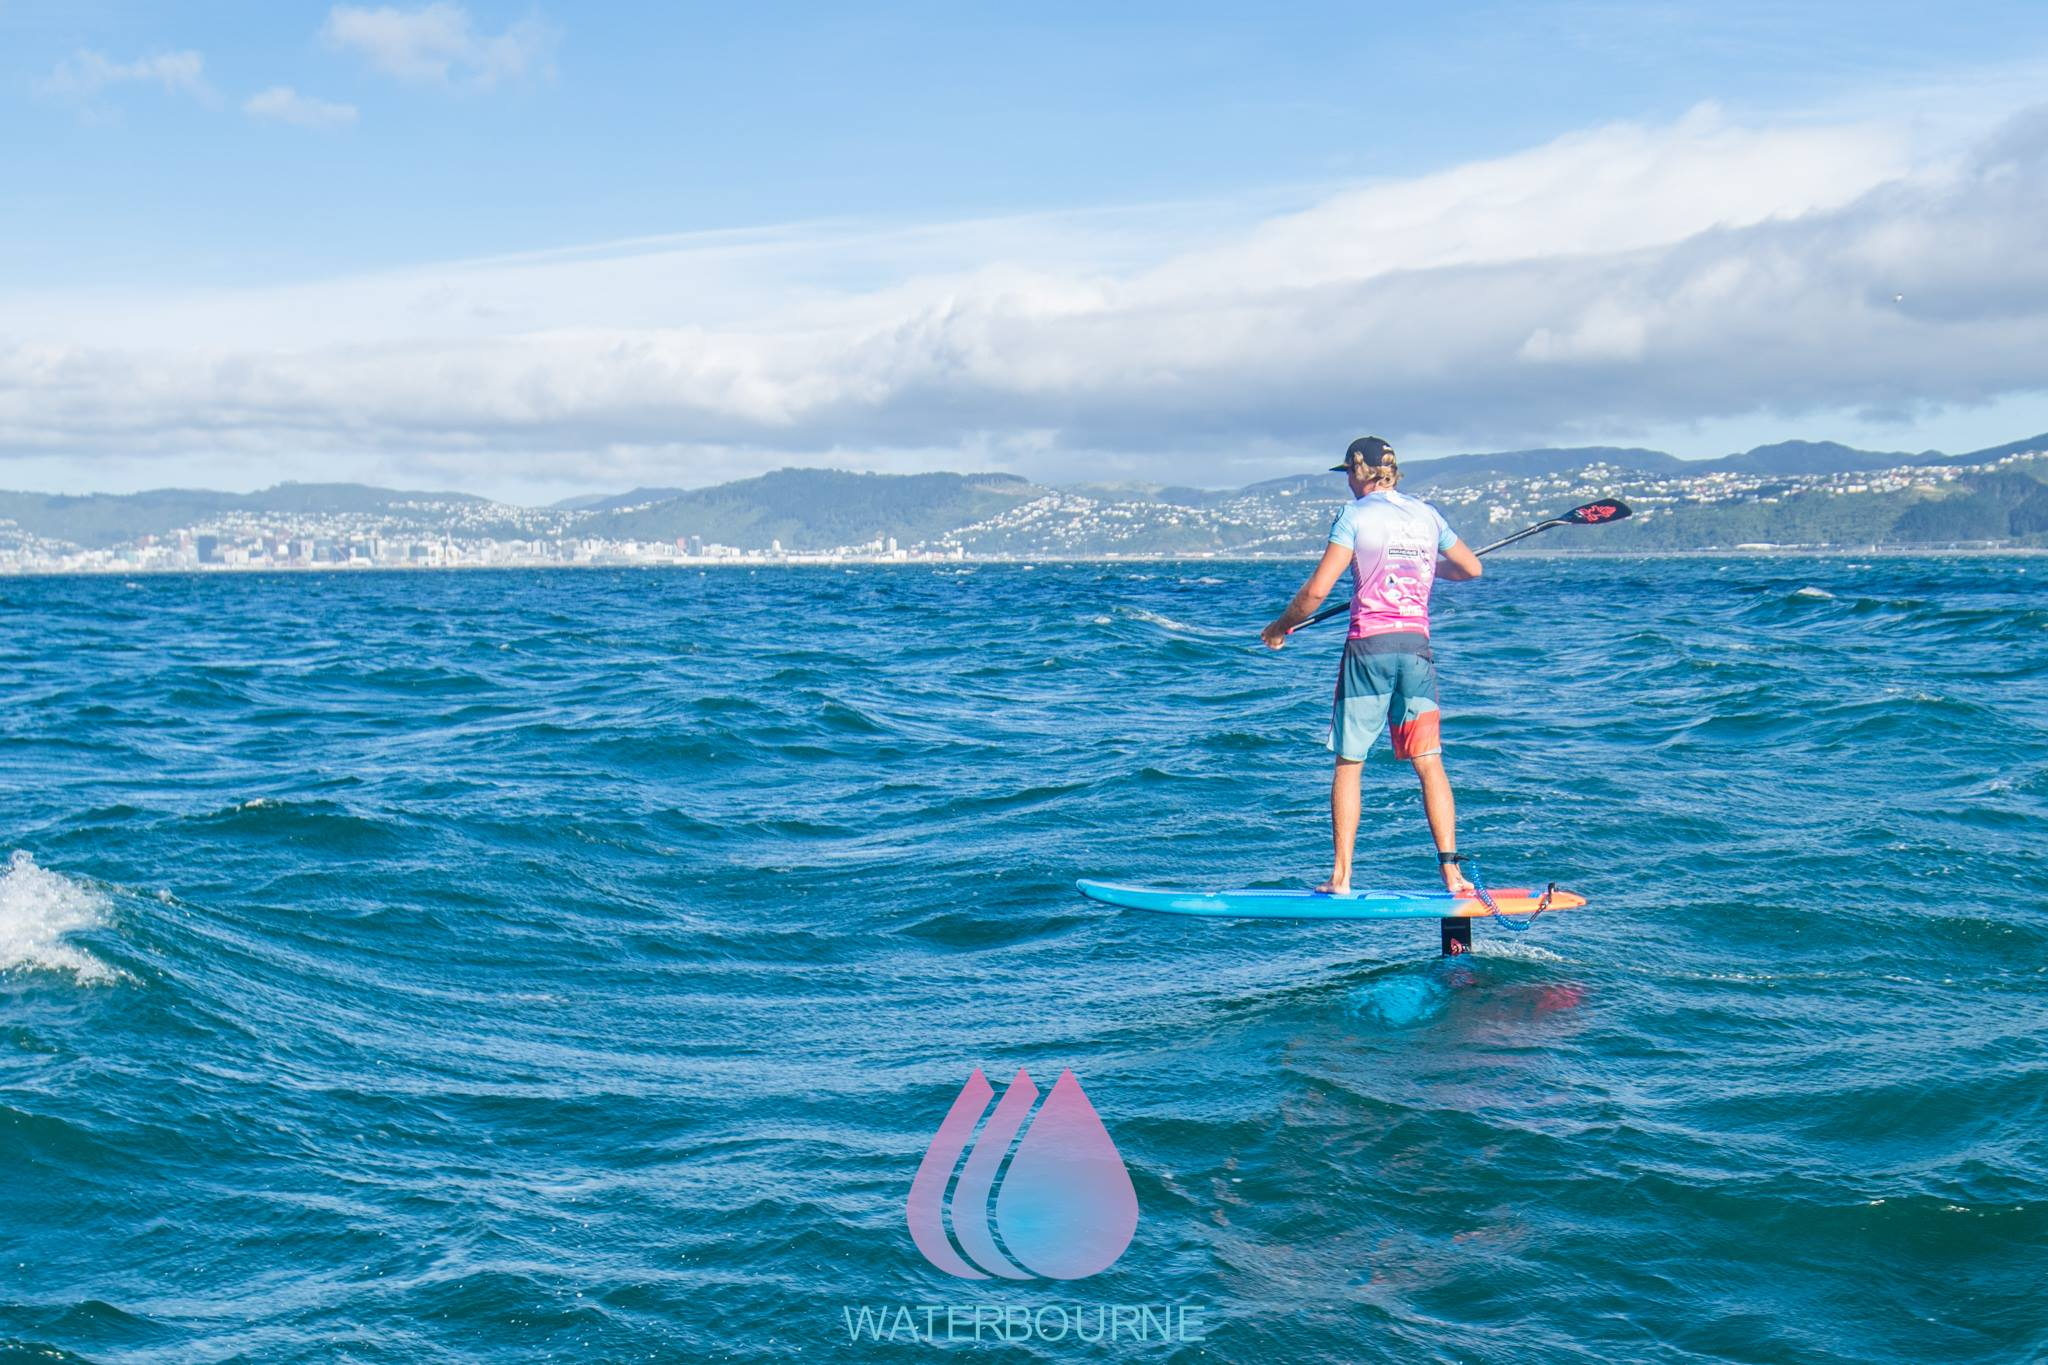 foiling-downwind-ocean-clash-paddle-board